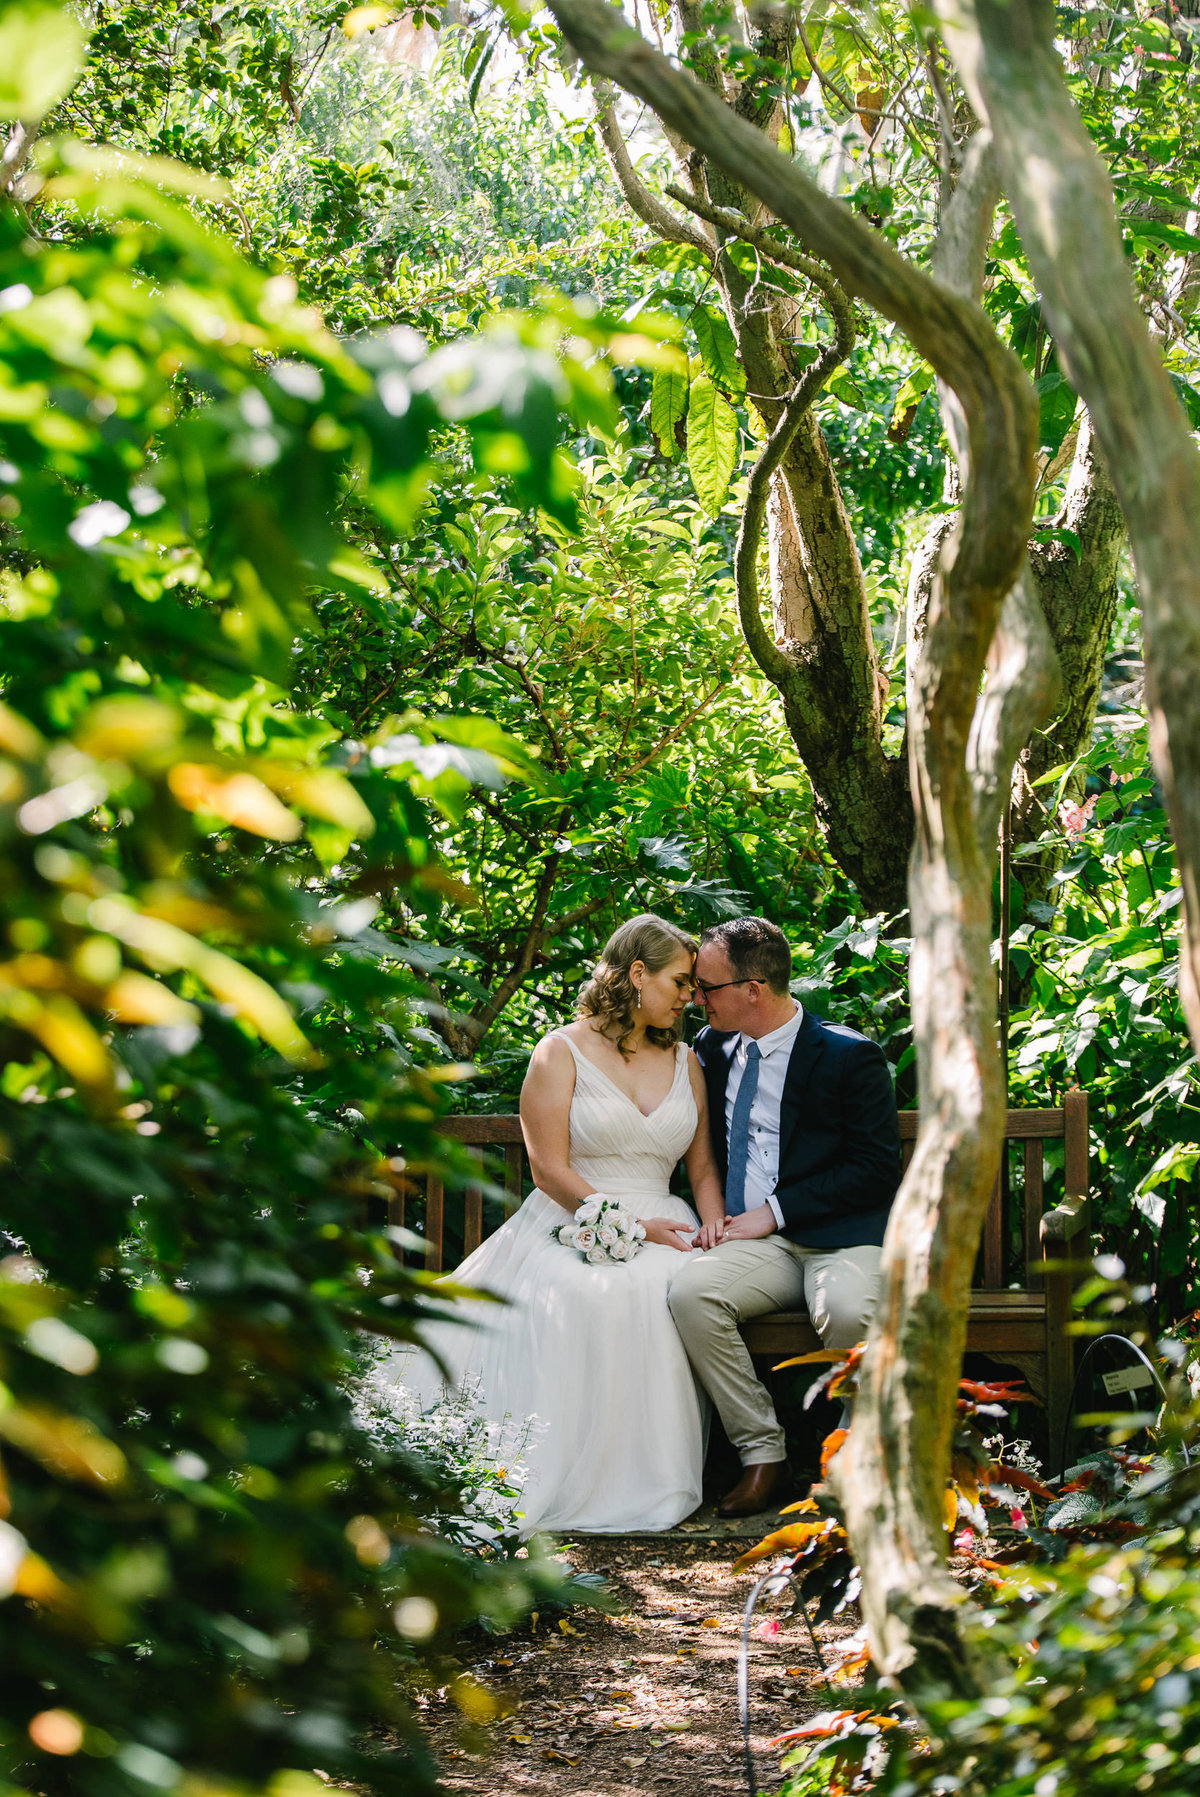 jessie-blake-royal-botanic-garden-sydney-wedding-54